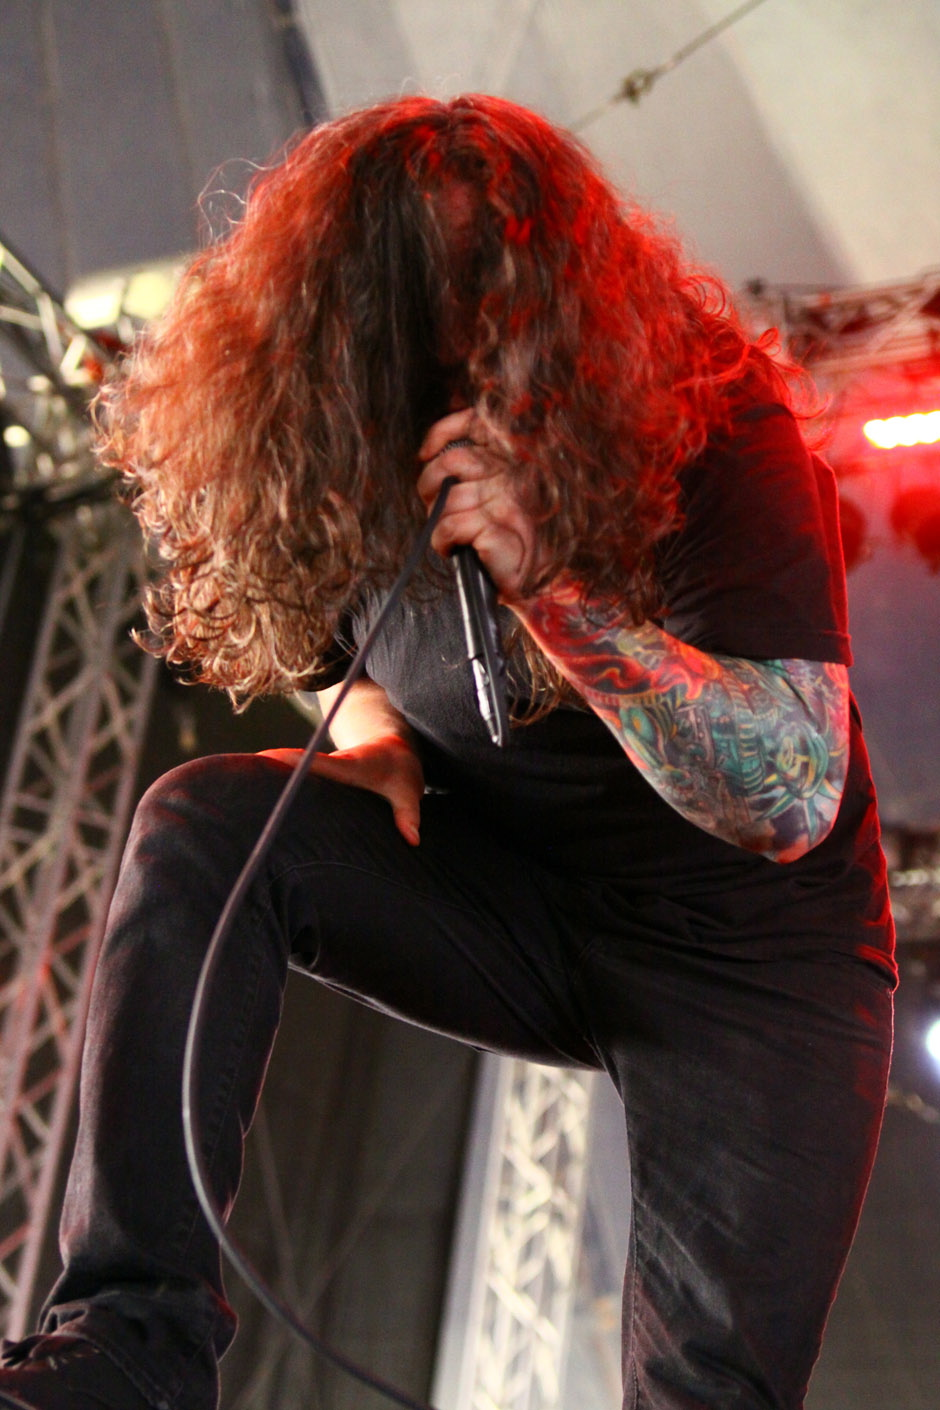 All Shall Perish, With Full Force, 30.06.2012